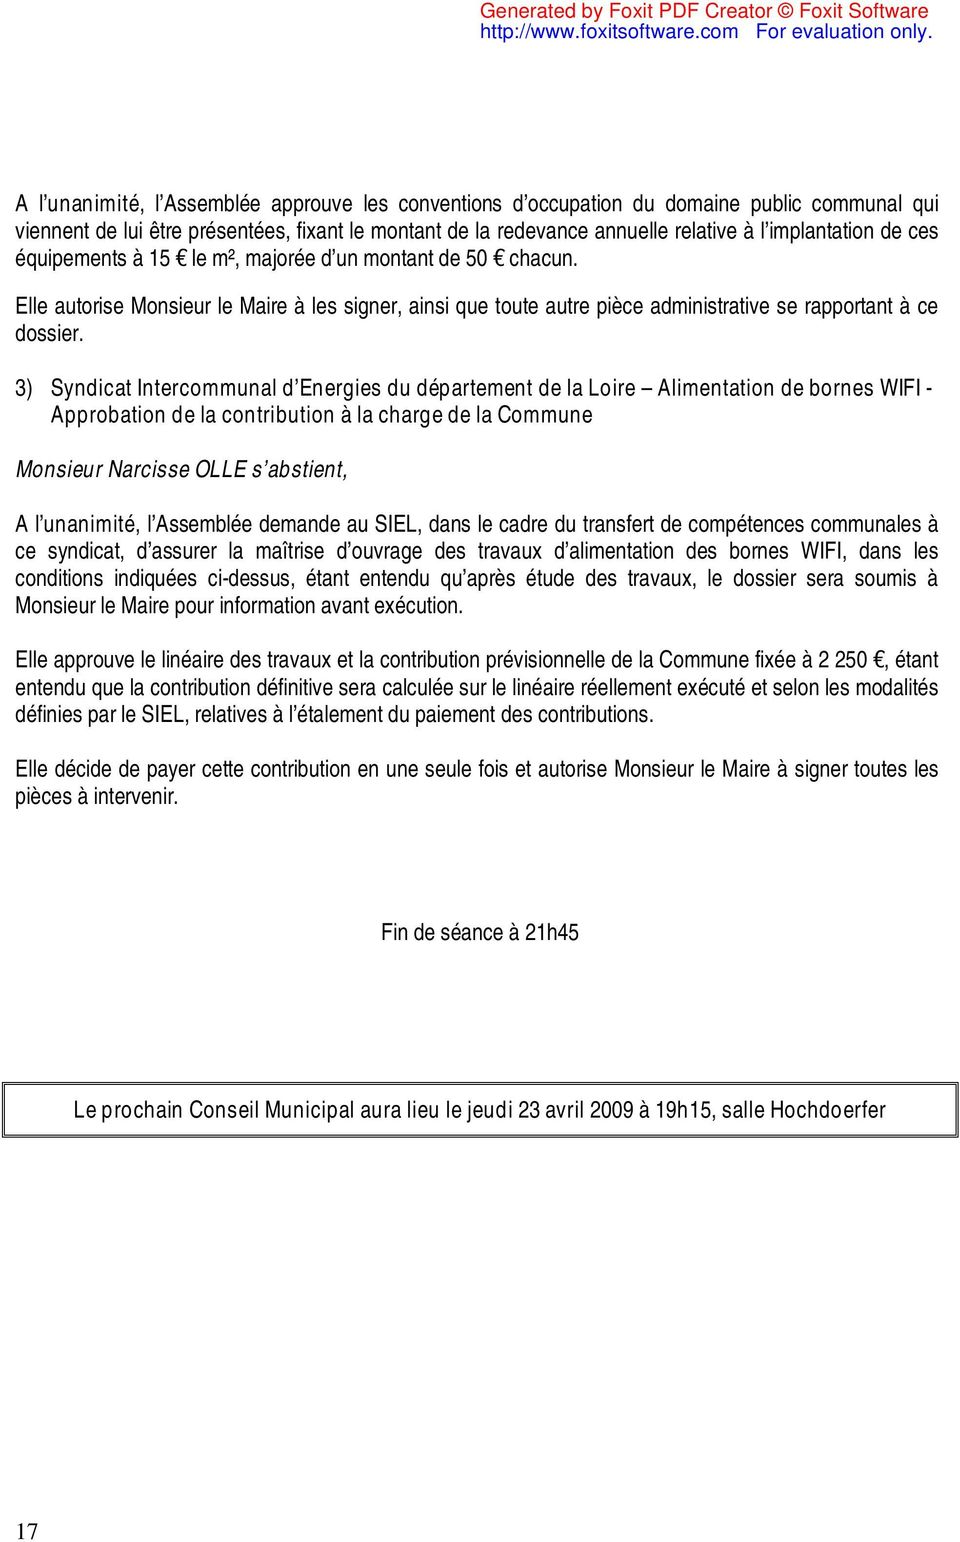 3) Syndicat Intercommunal d Energies du département de la Loire Alimentation de bornes WIFI - Approbation de la contribution à la charge de la Commune Monsieur Narcisse OLLE s abstient, A l